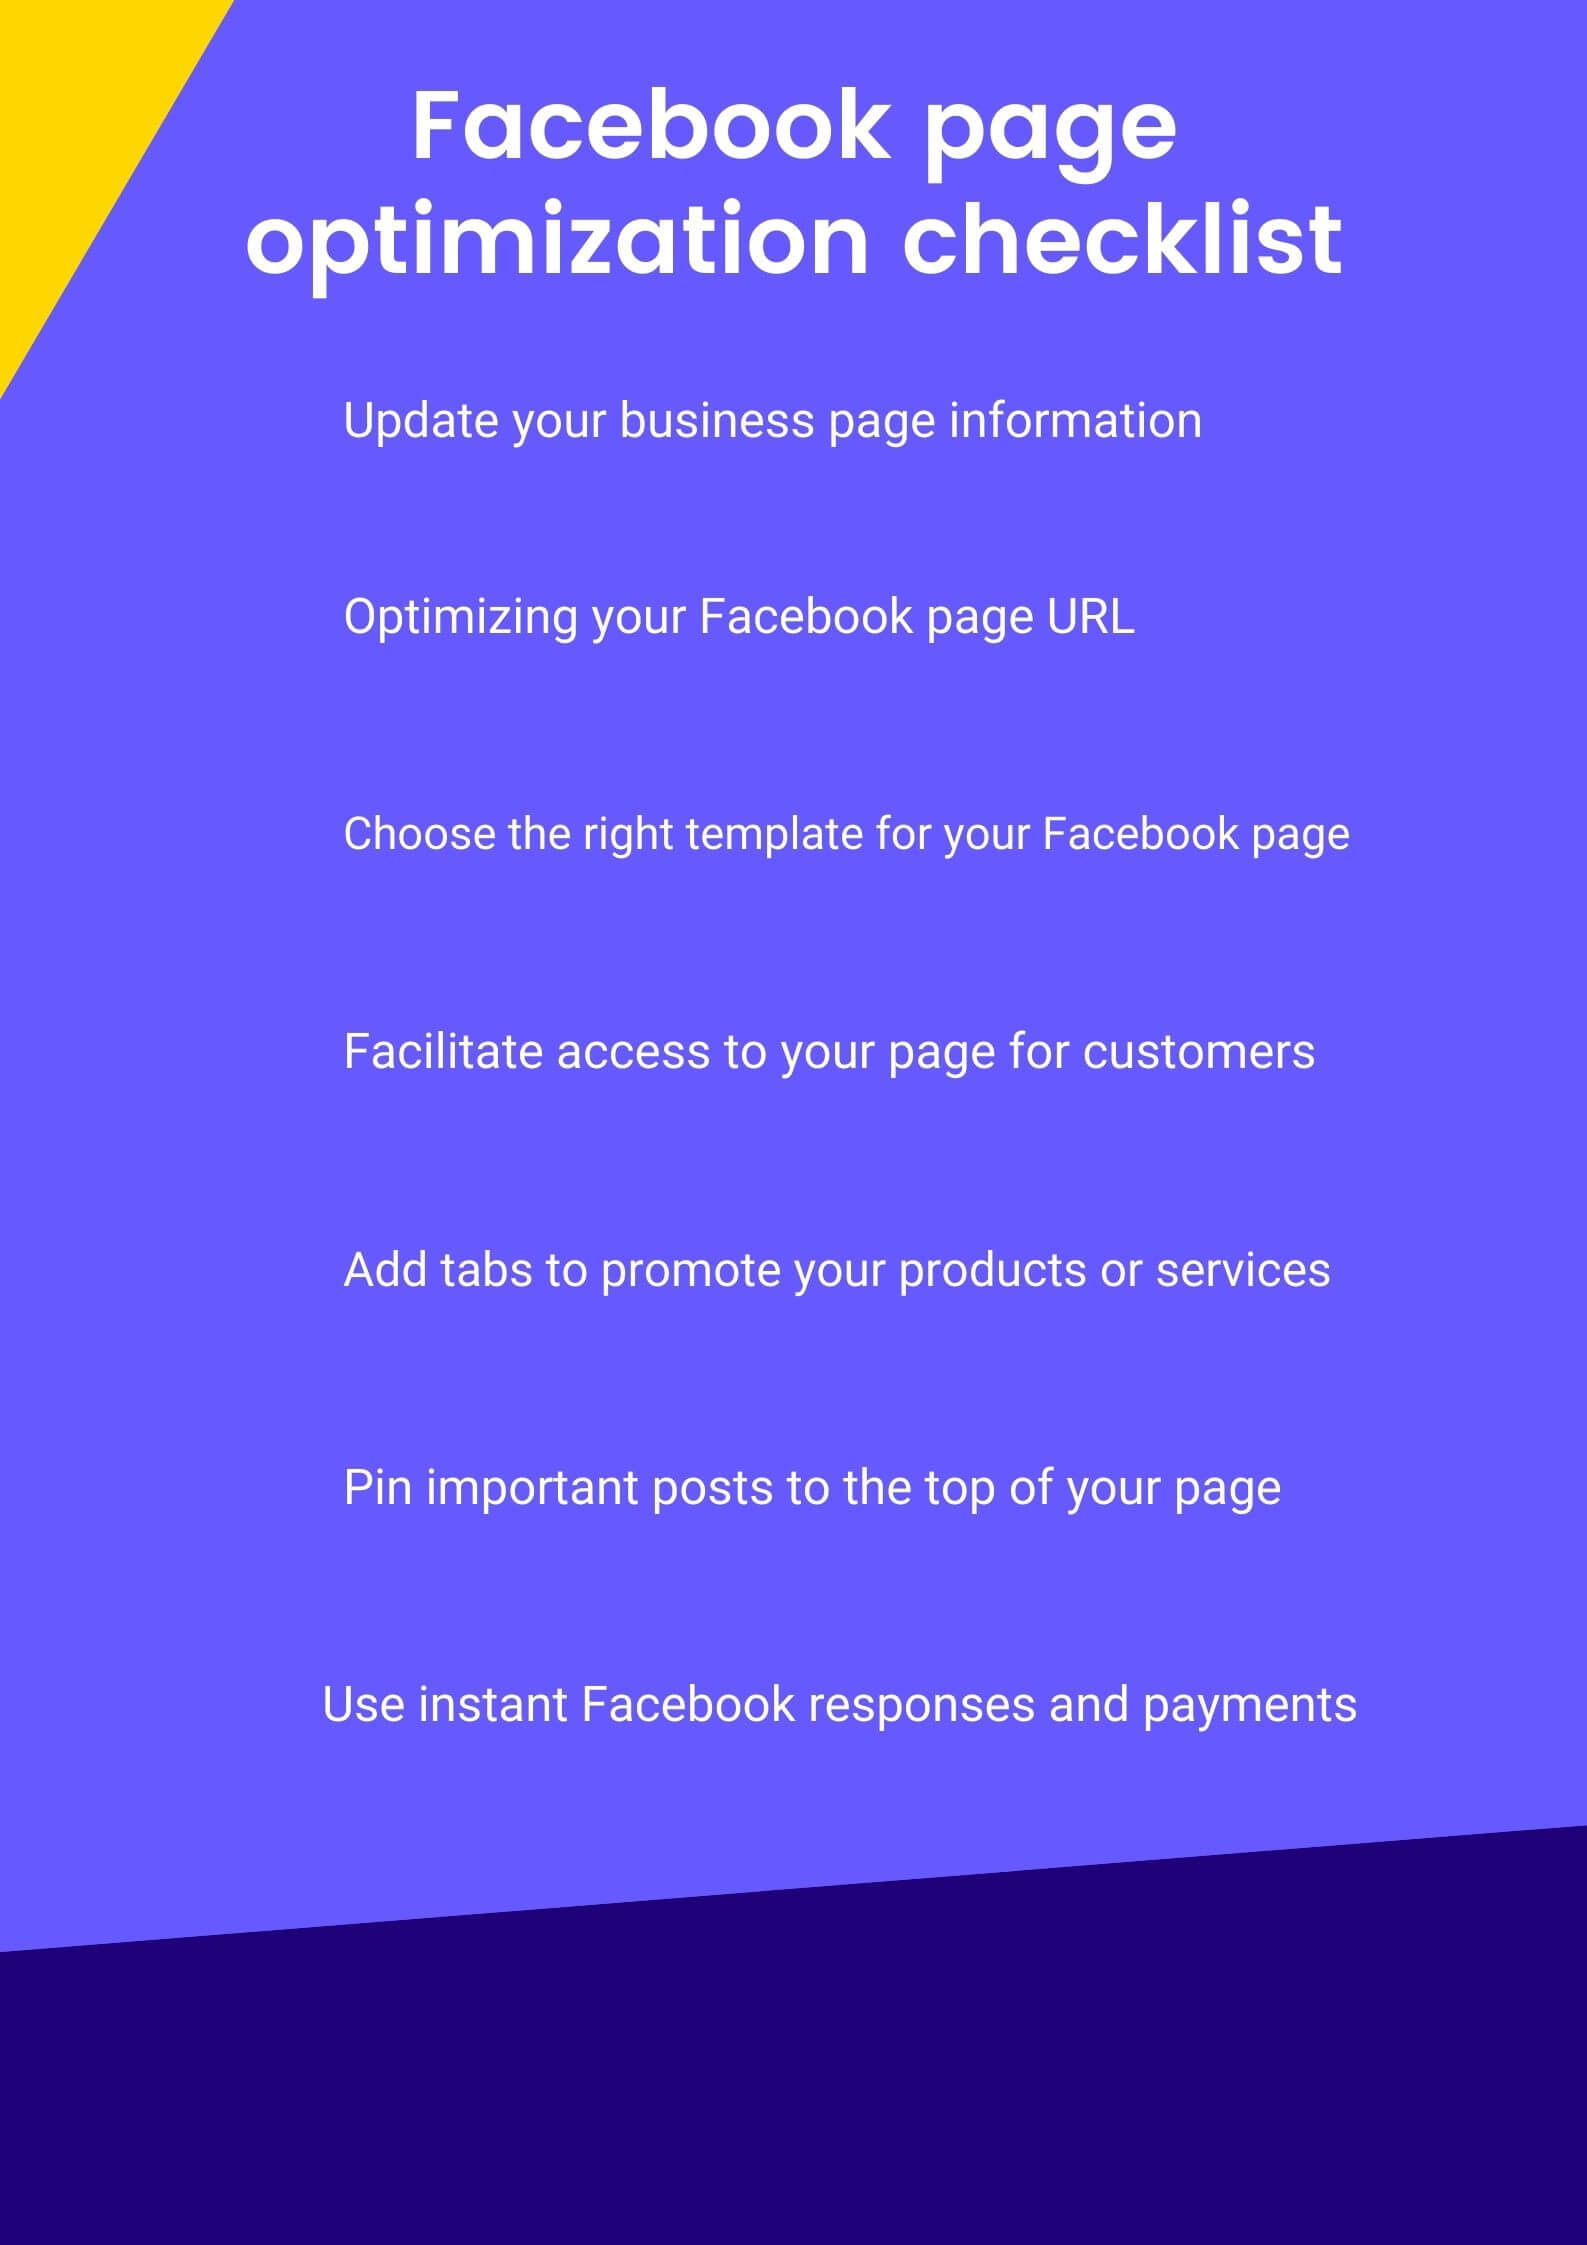 7 ways to optimize your Facebook page